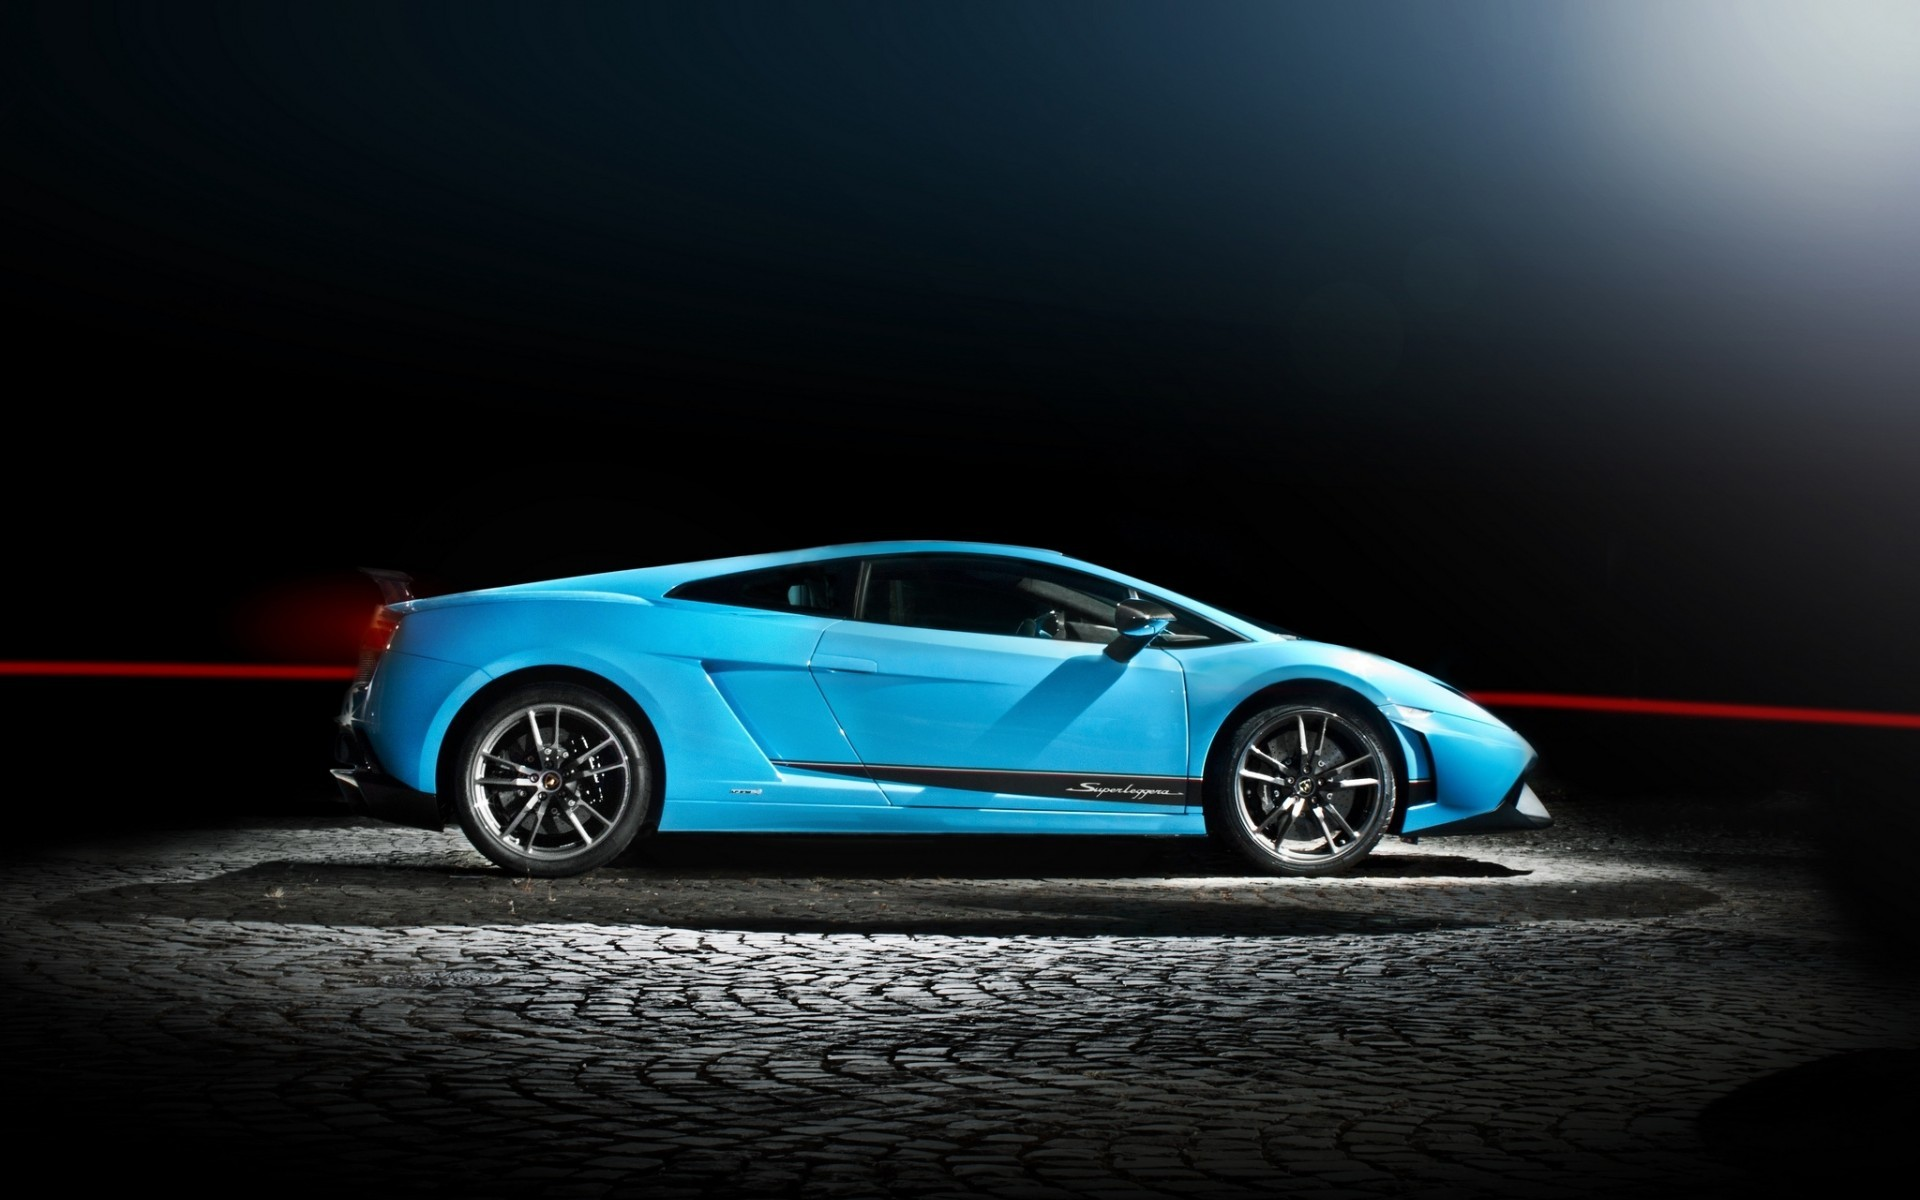 Car Luxury Cars Blue Cars Wallpapers Hd Desktop And